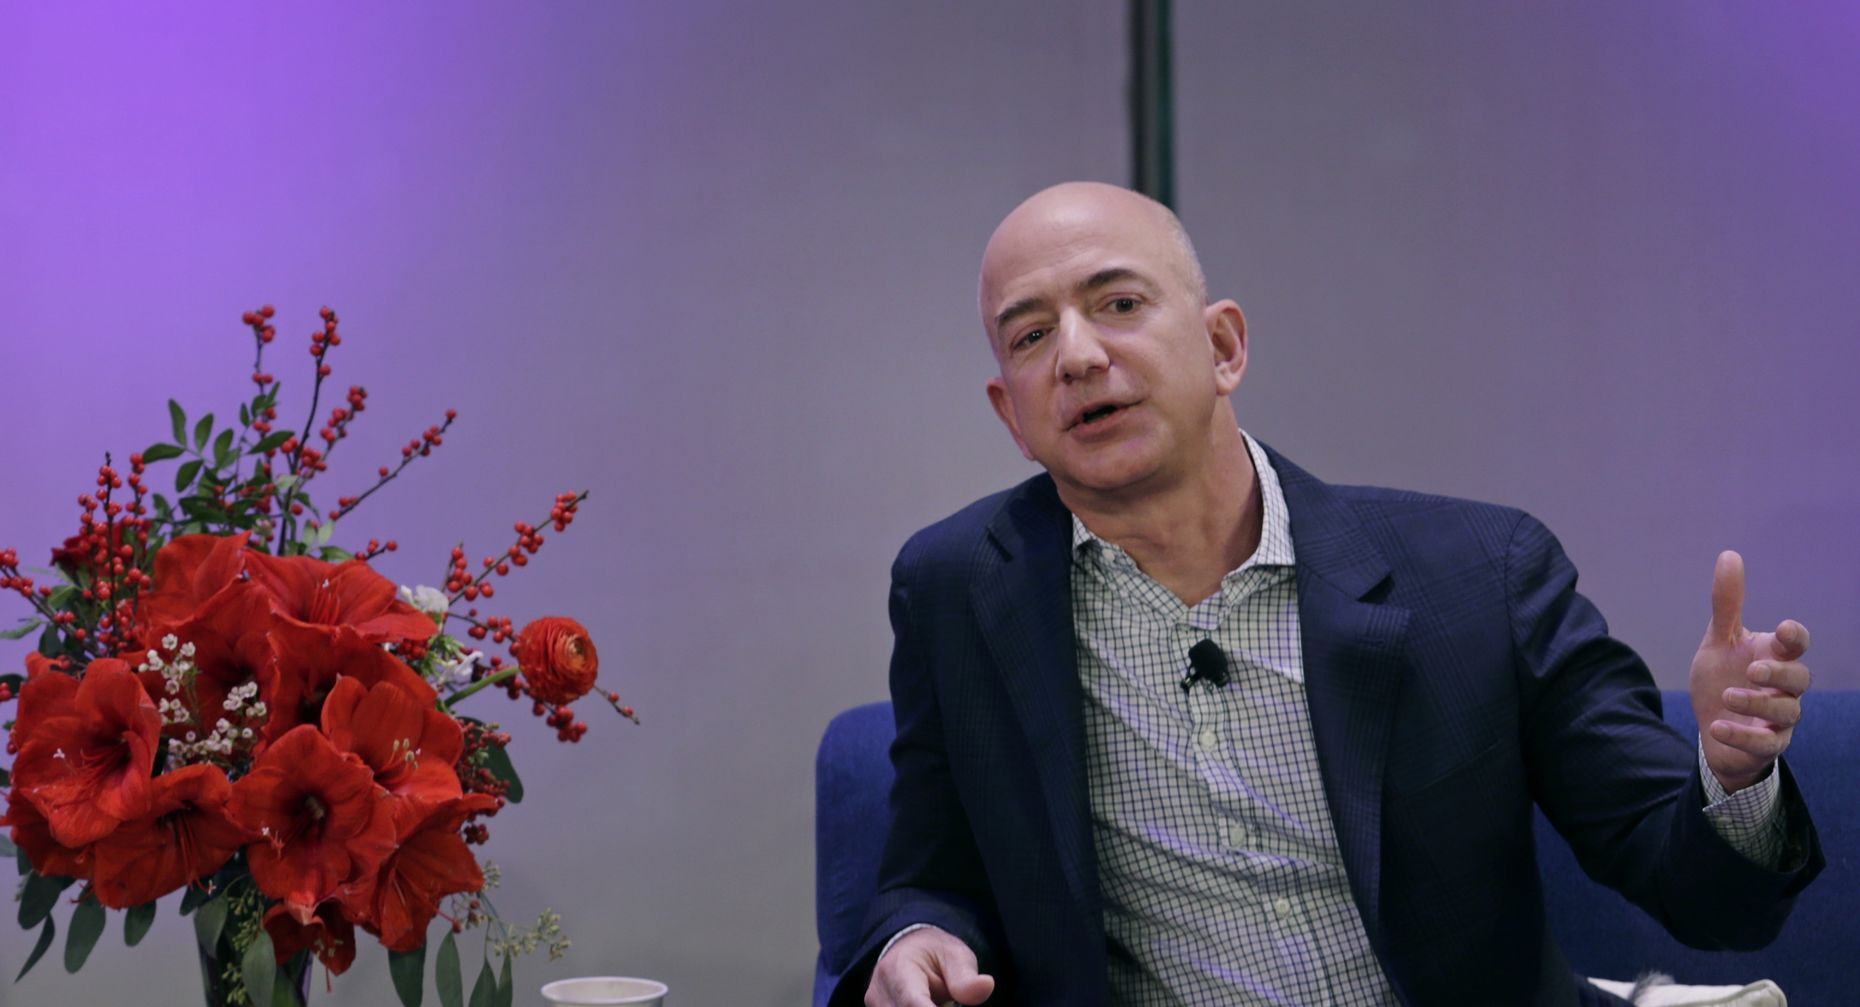 Amazon CEO Jeff Bezos. Photo by Bloomberg